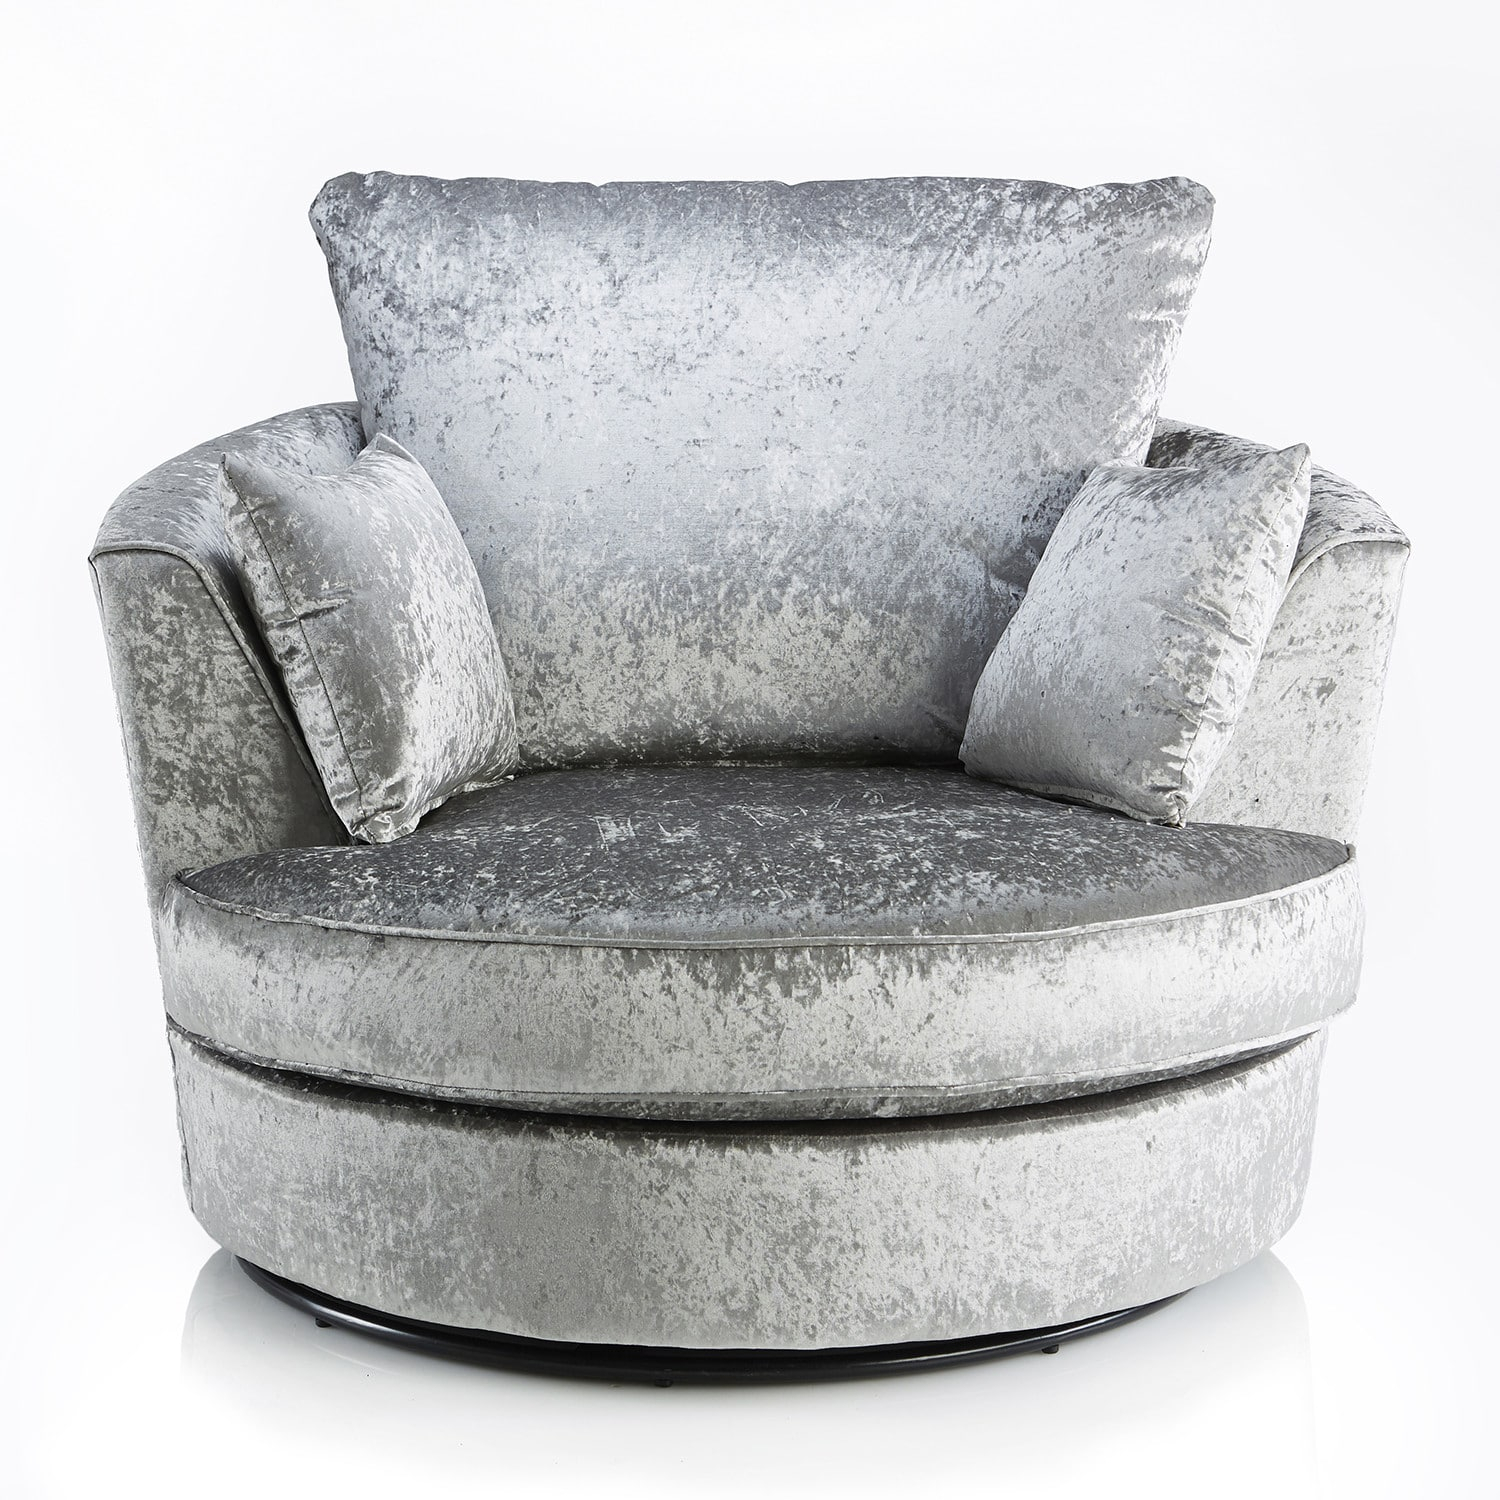 Crushed Velvet Furniture | Sofas, Beds, Chairs, Cushions Inside Grey Swivel Chairs (View 5 of 25)